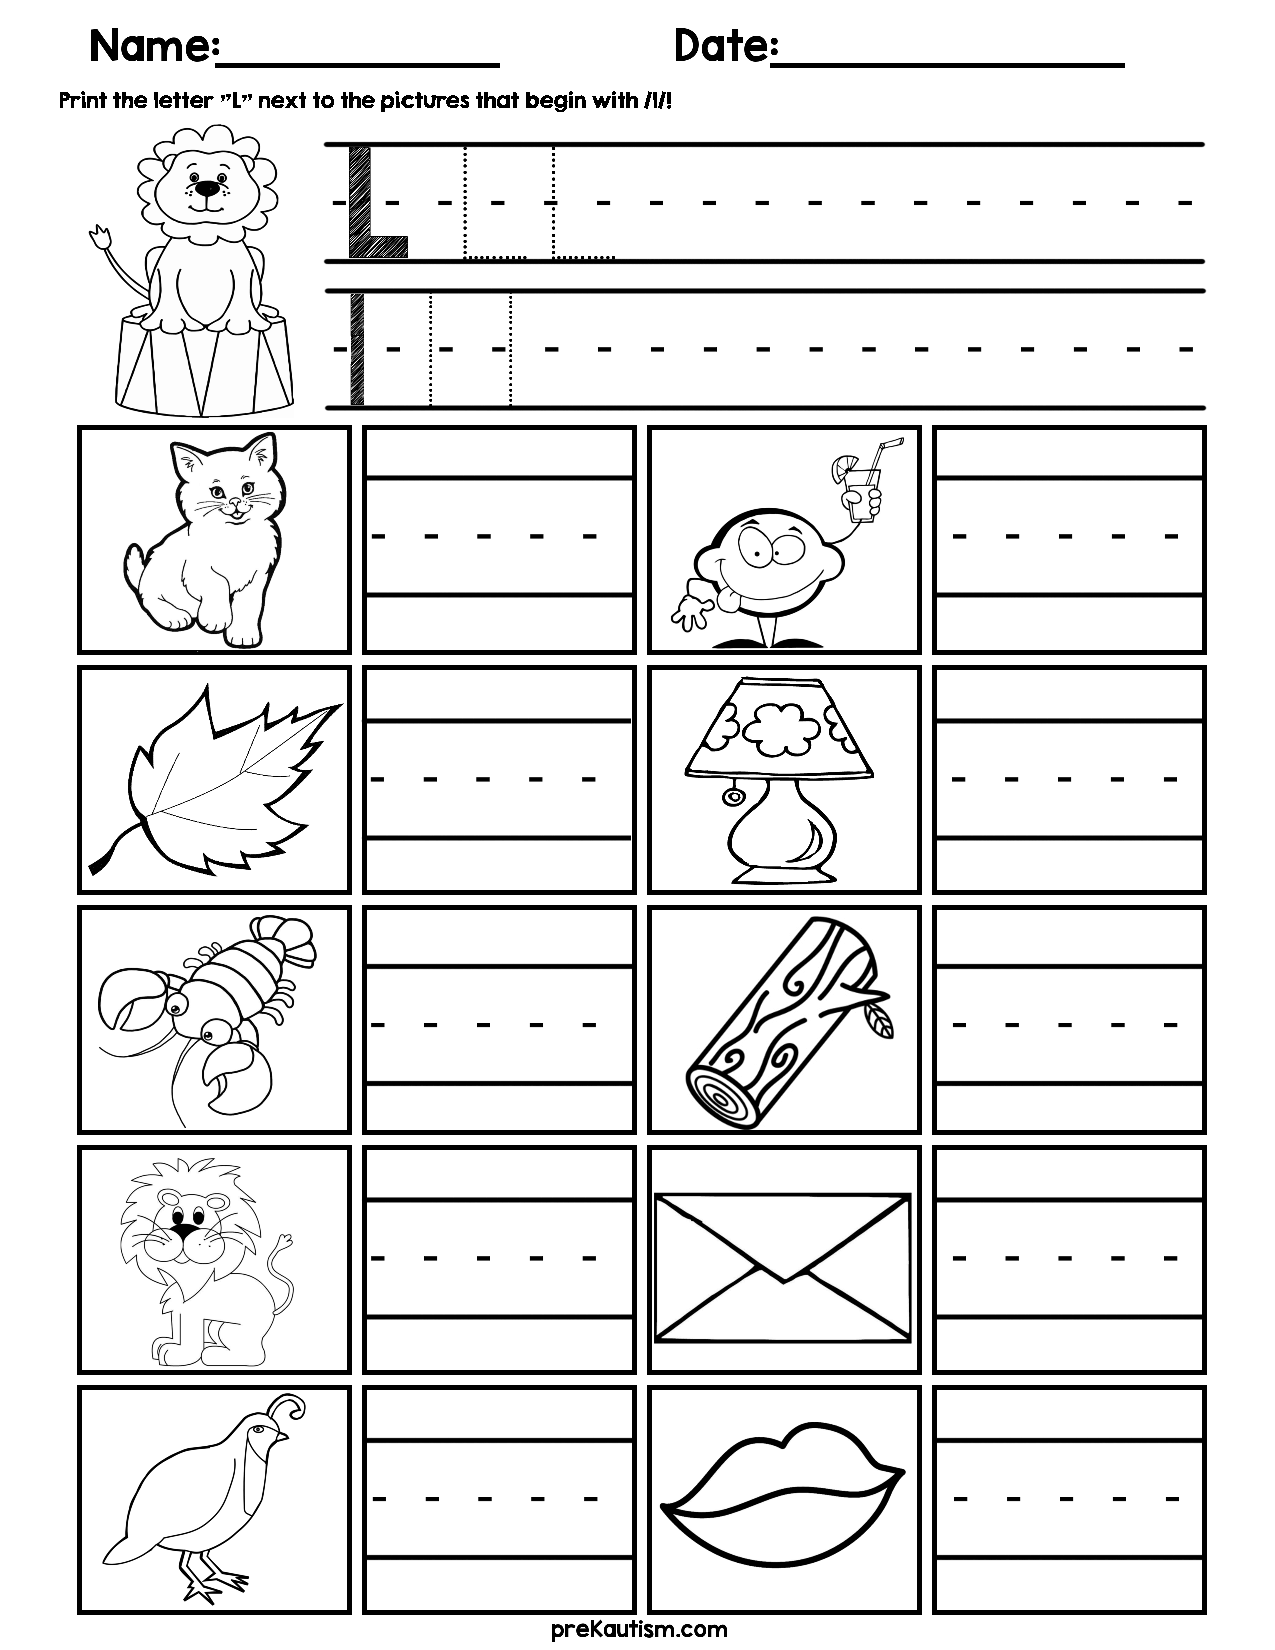 Initial Consonant Practice Worksheets Practices